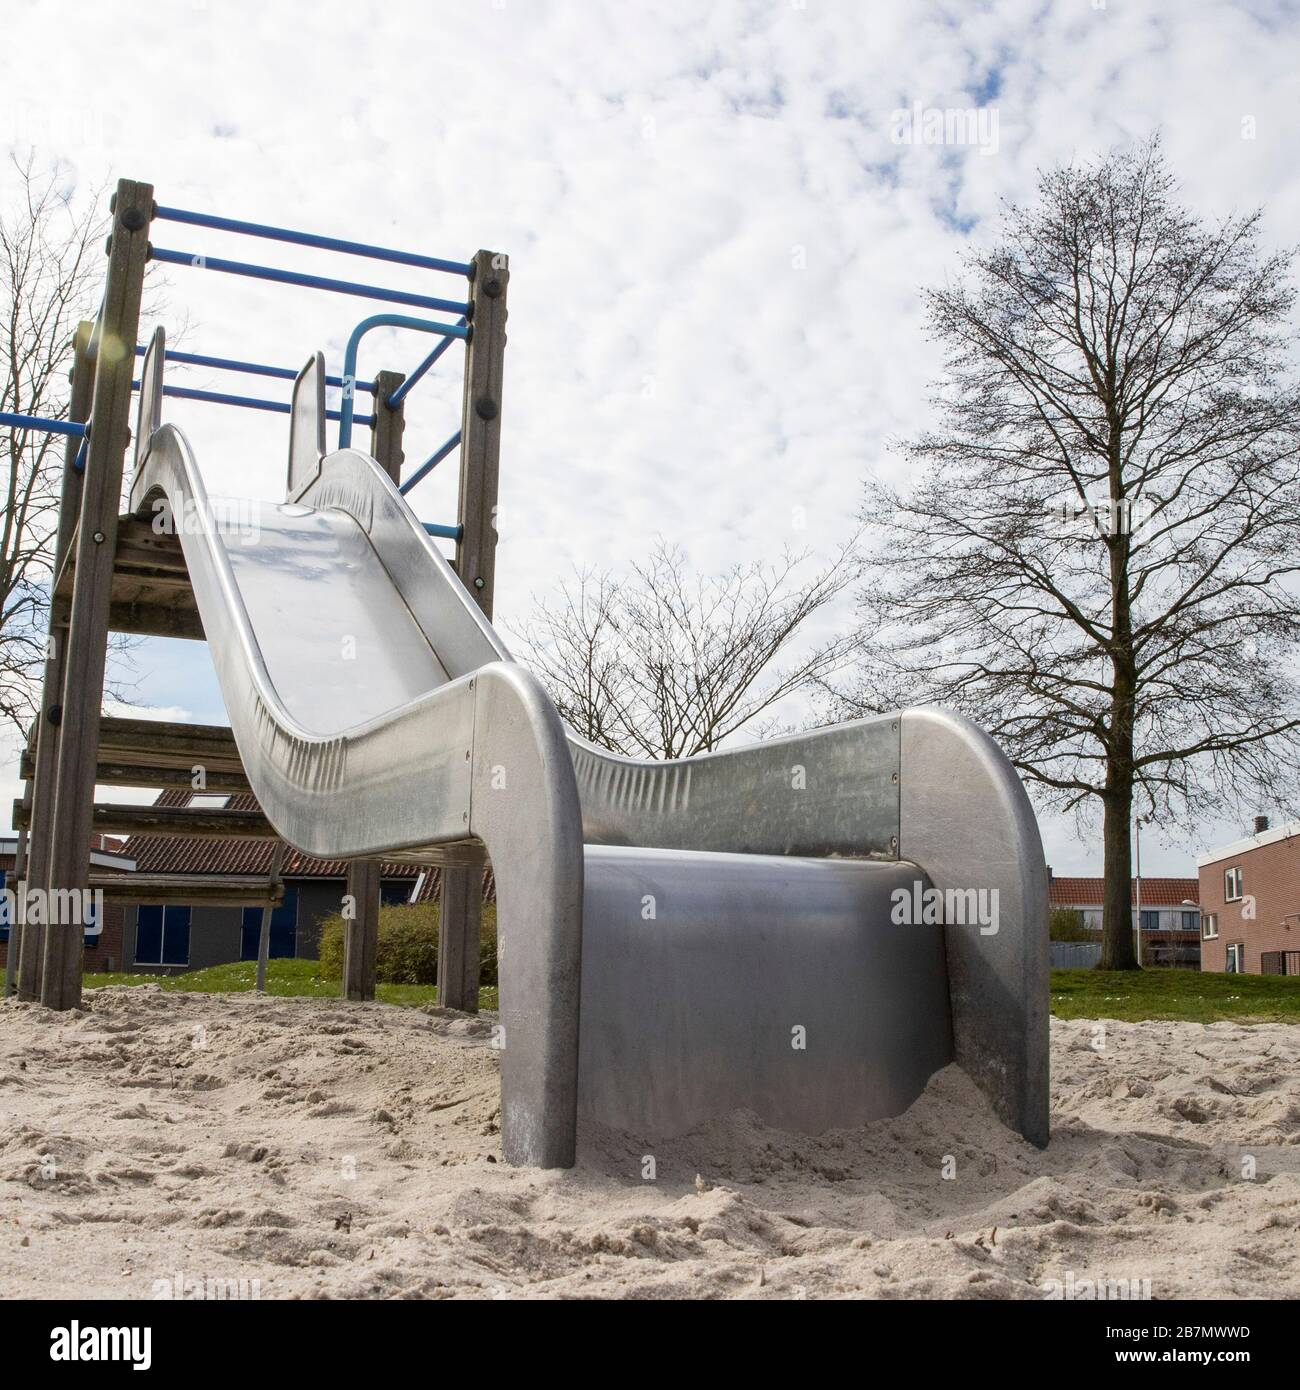 7almelo 12 03 2020 Netherlands Dutchnews Corona Virus Situations Abandoned Playground For Kids Stock Photo Alamy